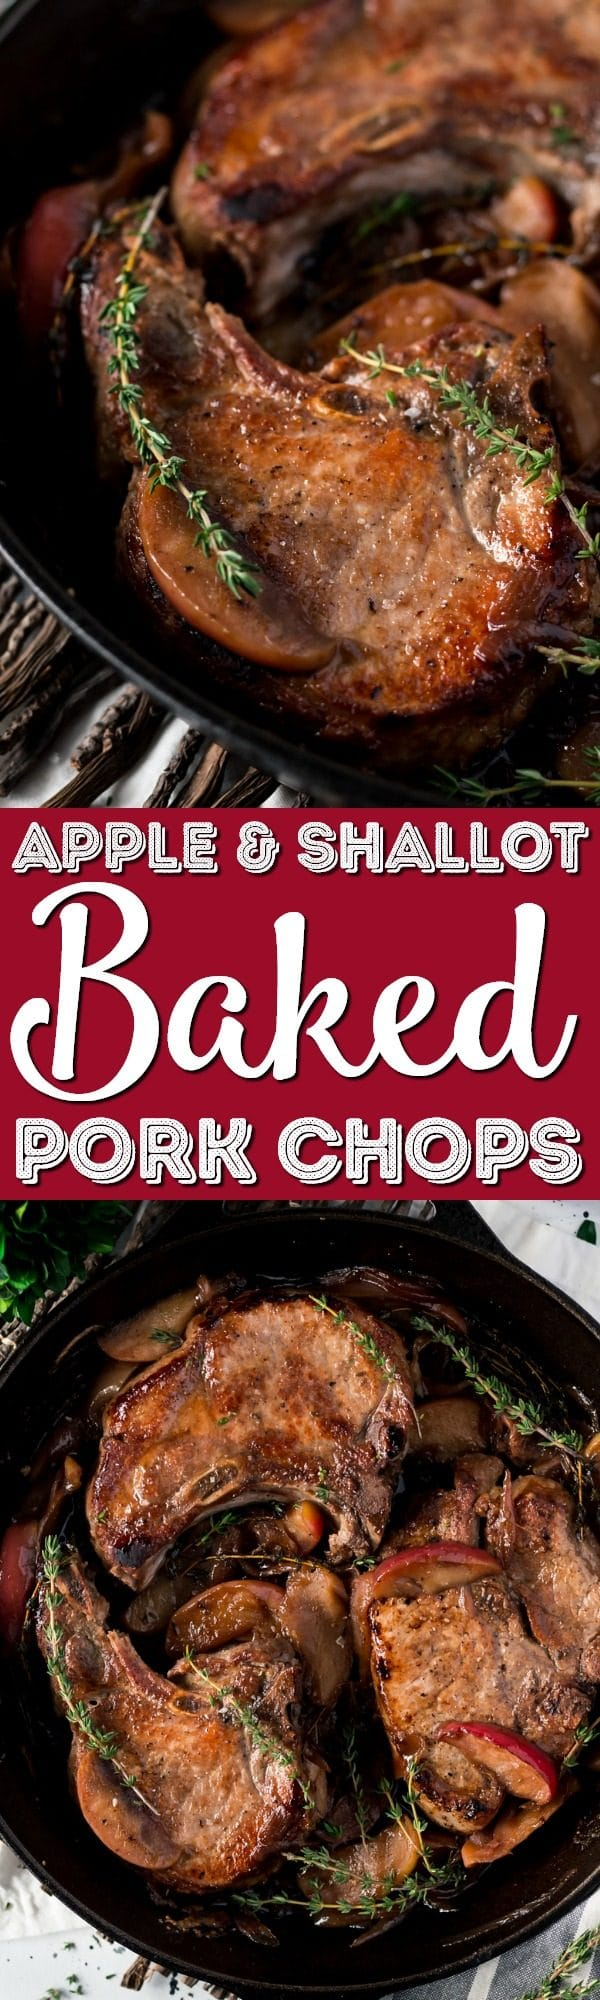 This Baked Pork Chops recipe will be an instant family dinner favorite! Made with wine, apples, and shallots, there's so much flavor in this pork recipe!